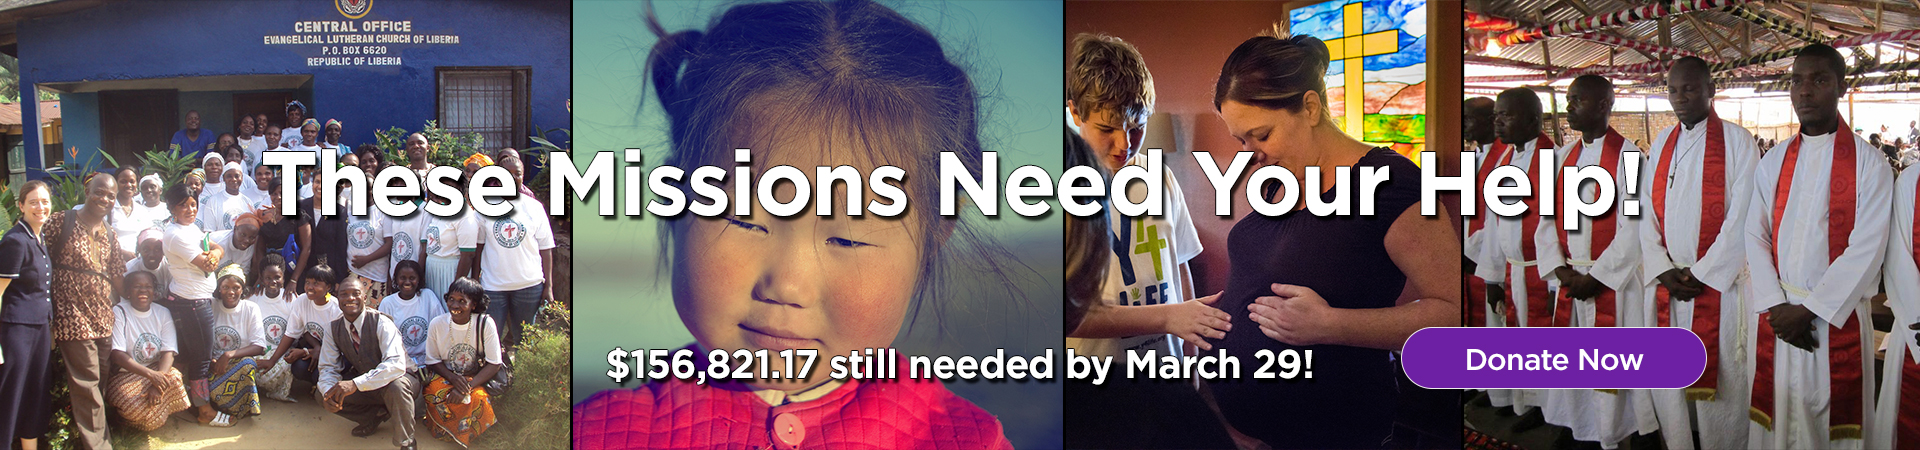 These Missions Need Your Help! Donate Now.